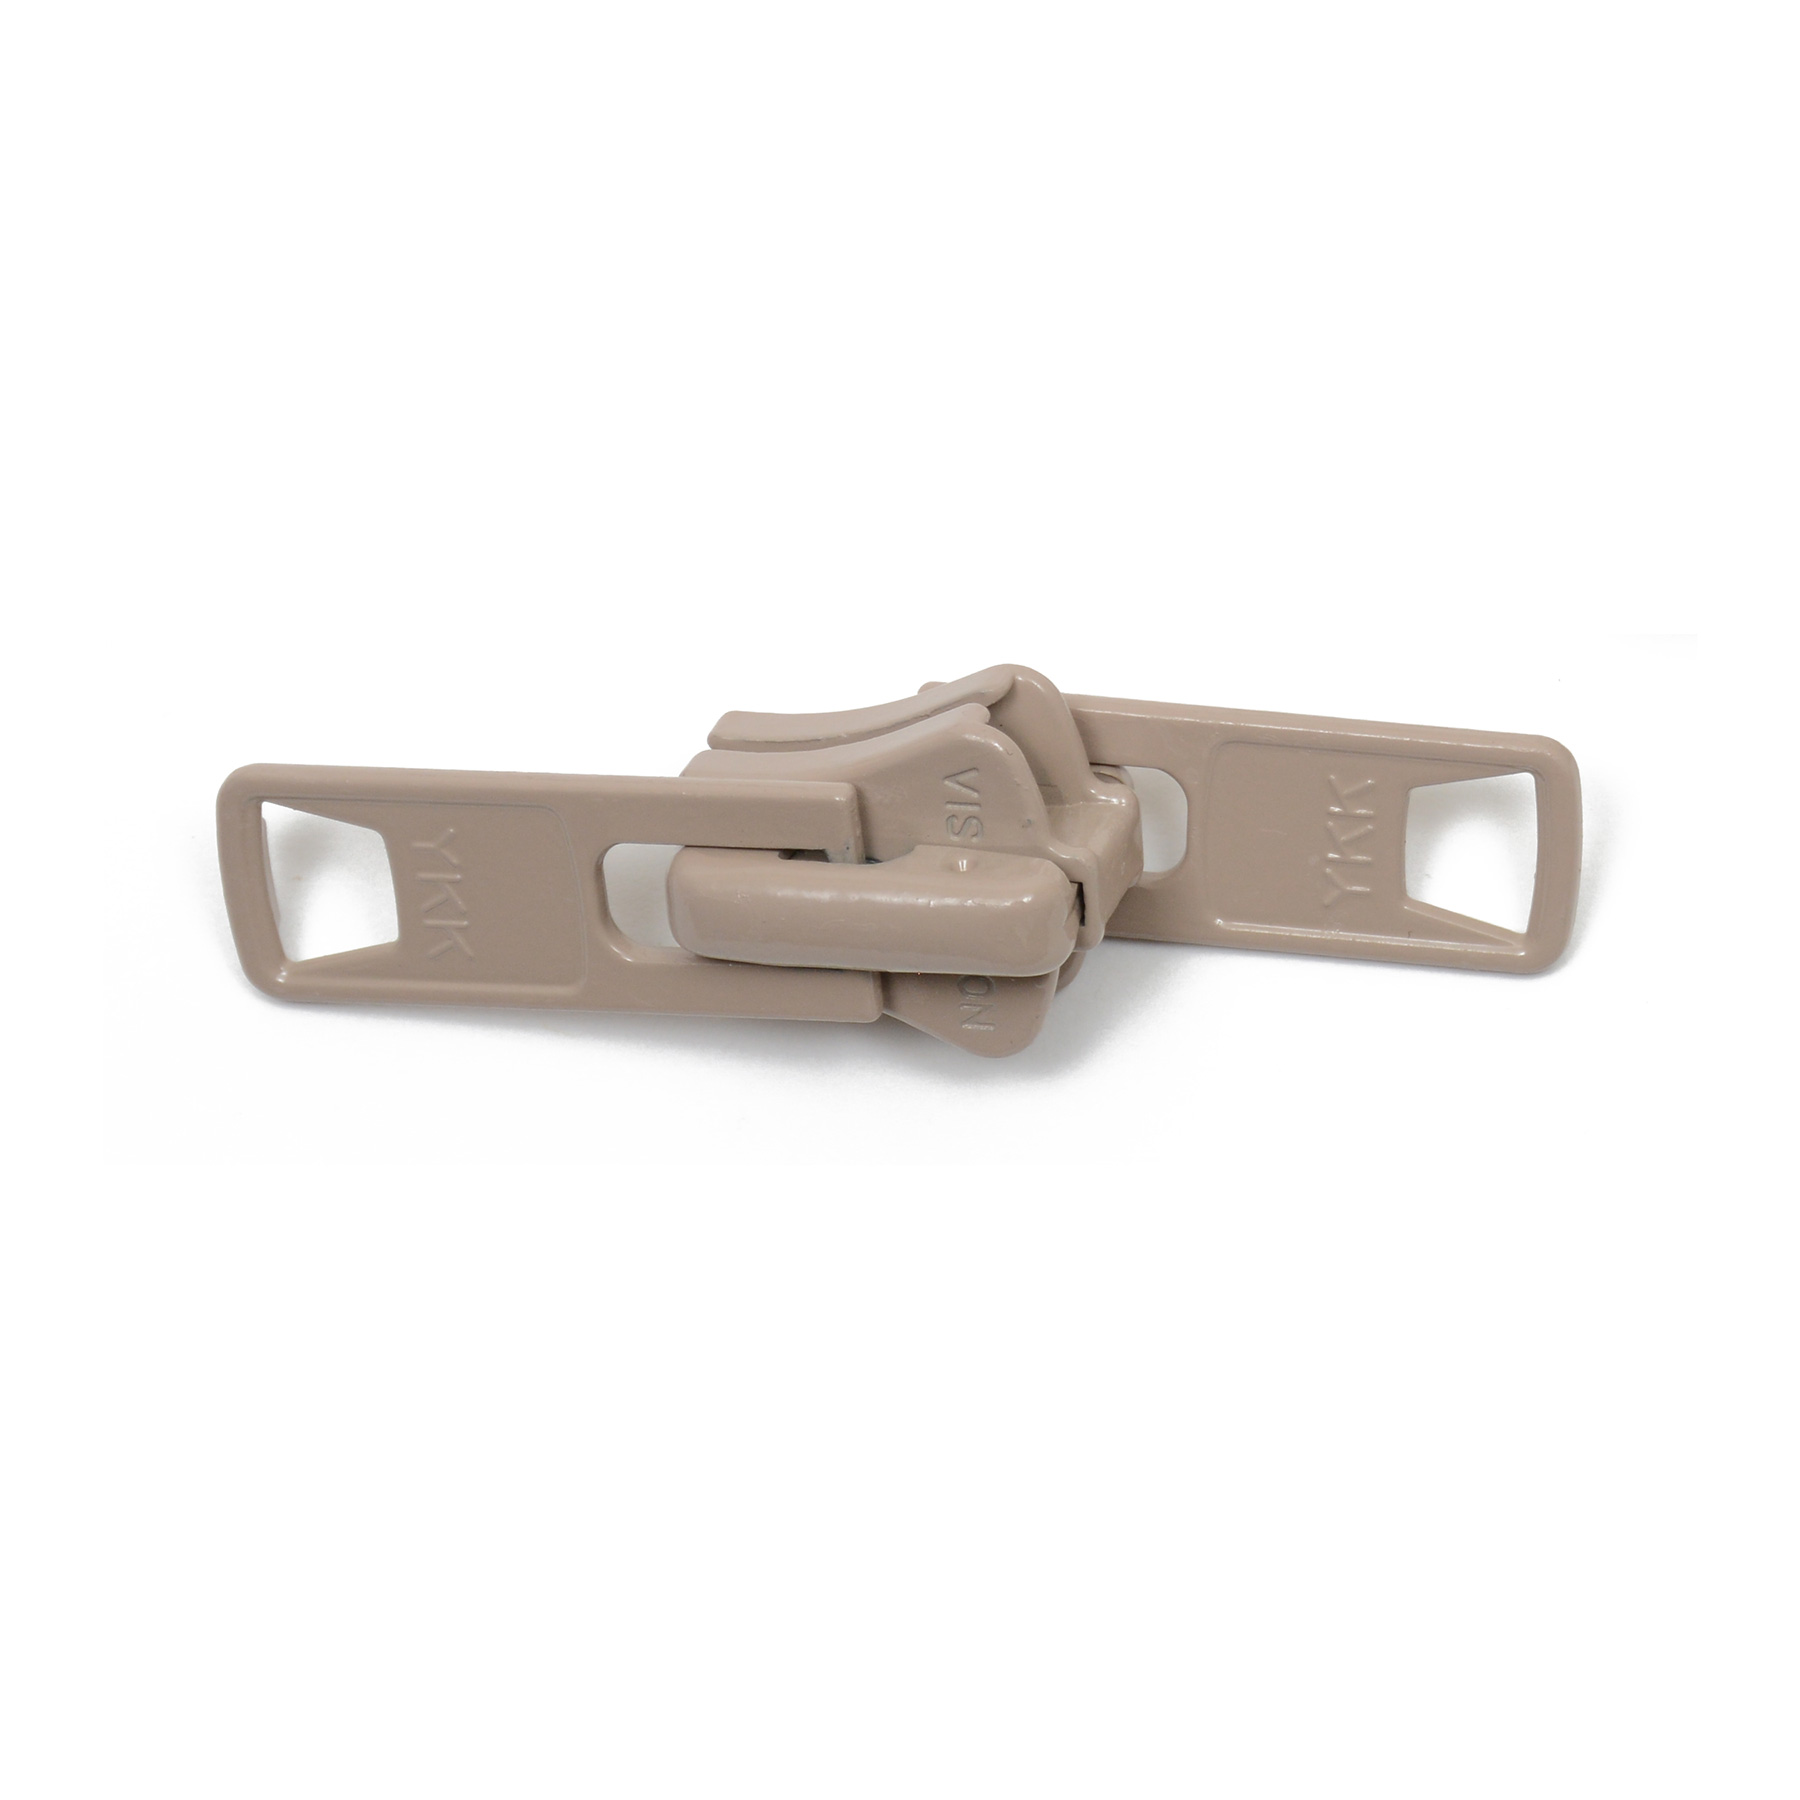 #10 YKK Vislon Locking 2-Tab Slider - Beige. 2 tab locking slider used with #10 beige Vislon zipper chain. This product is sold as a 25 pack.